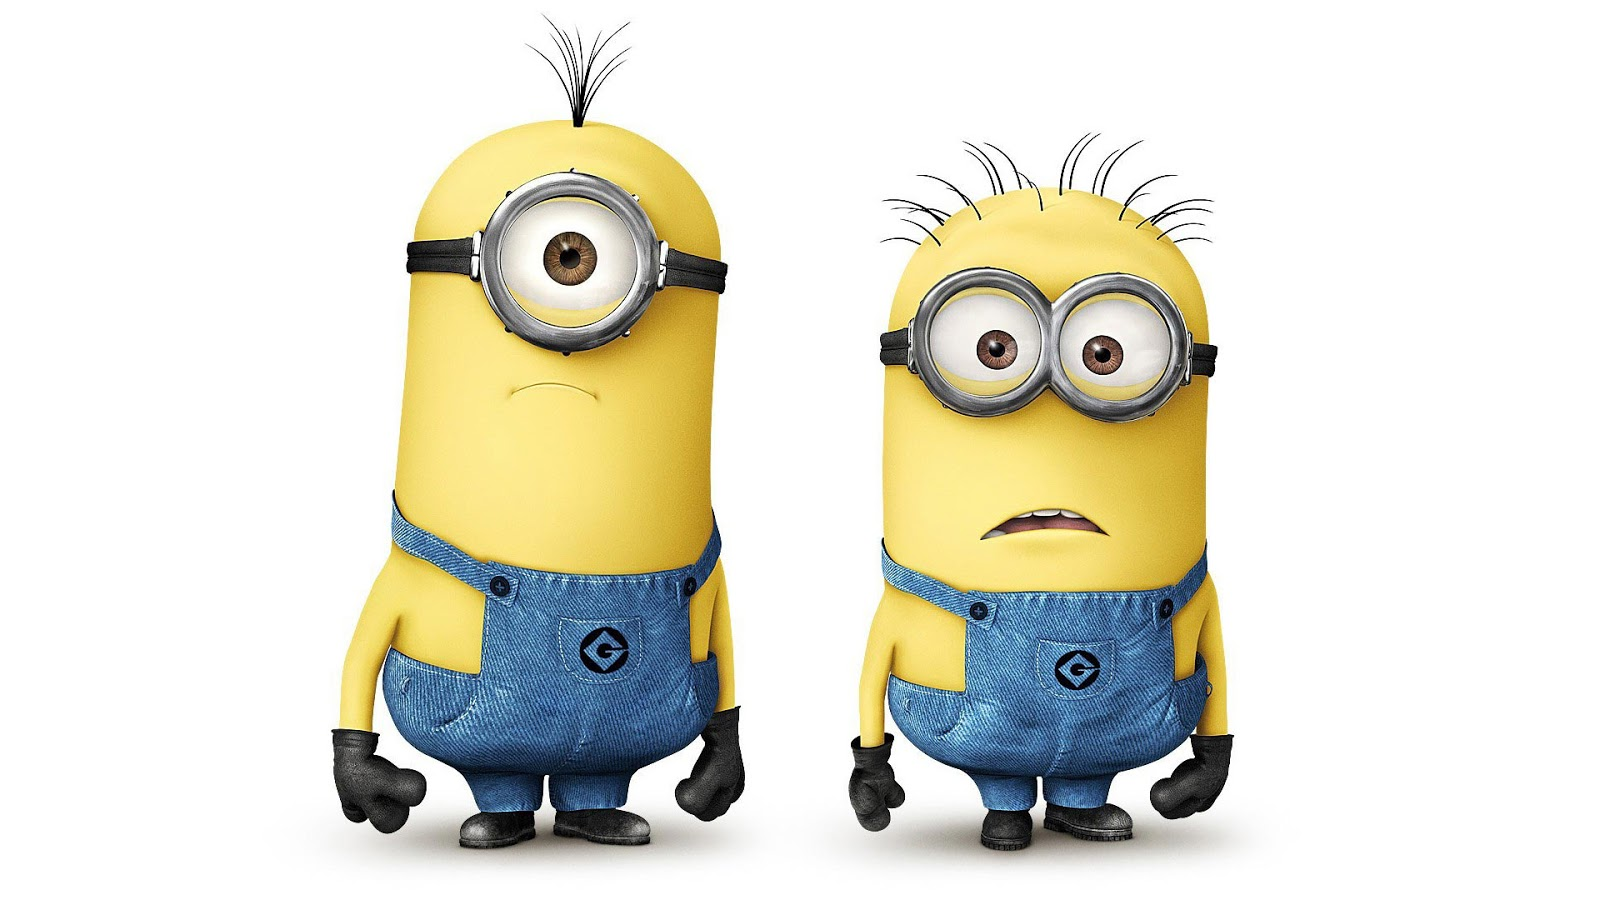 think now everyone is Crazy with these little Cute Minions...